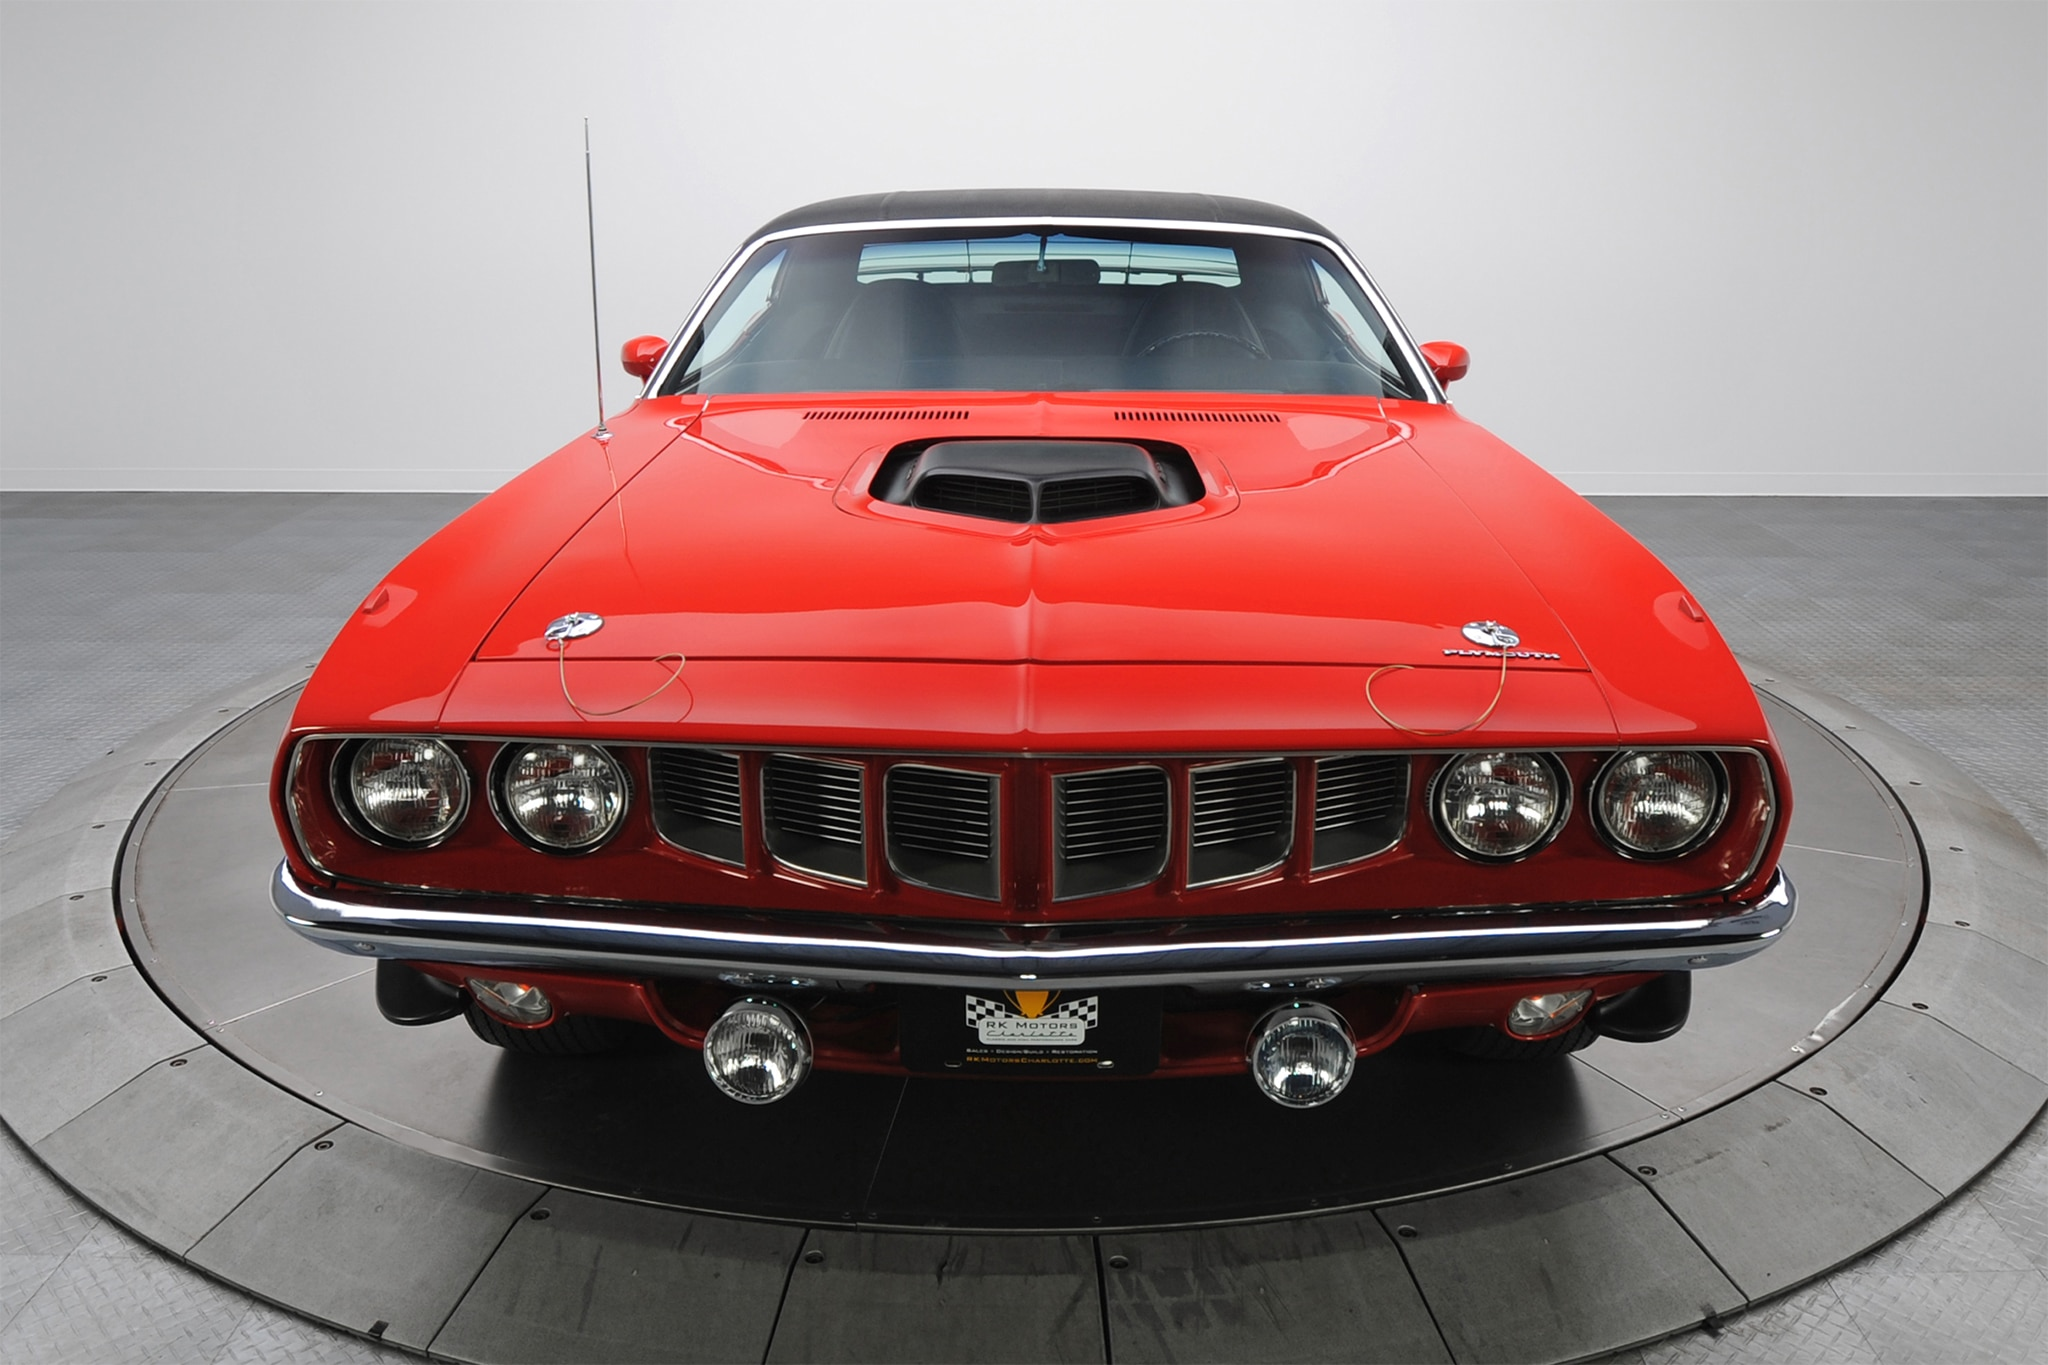 1971-Plymouth-HEMI-Barracuda-front-view-02-7